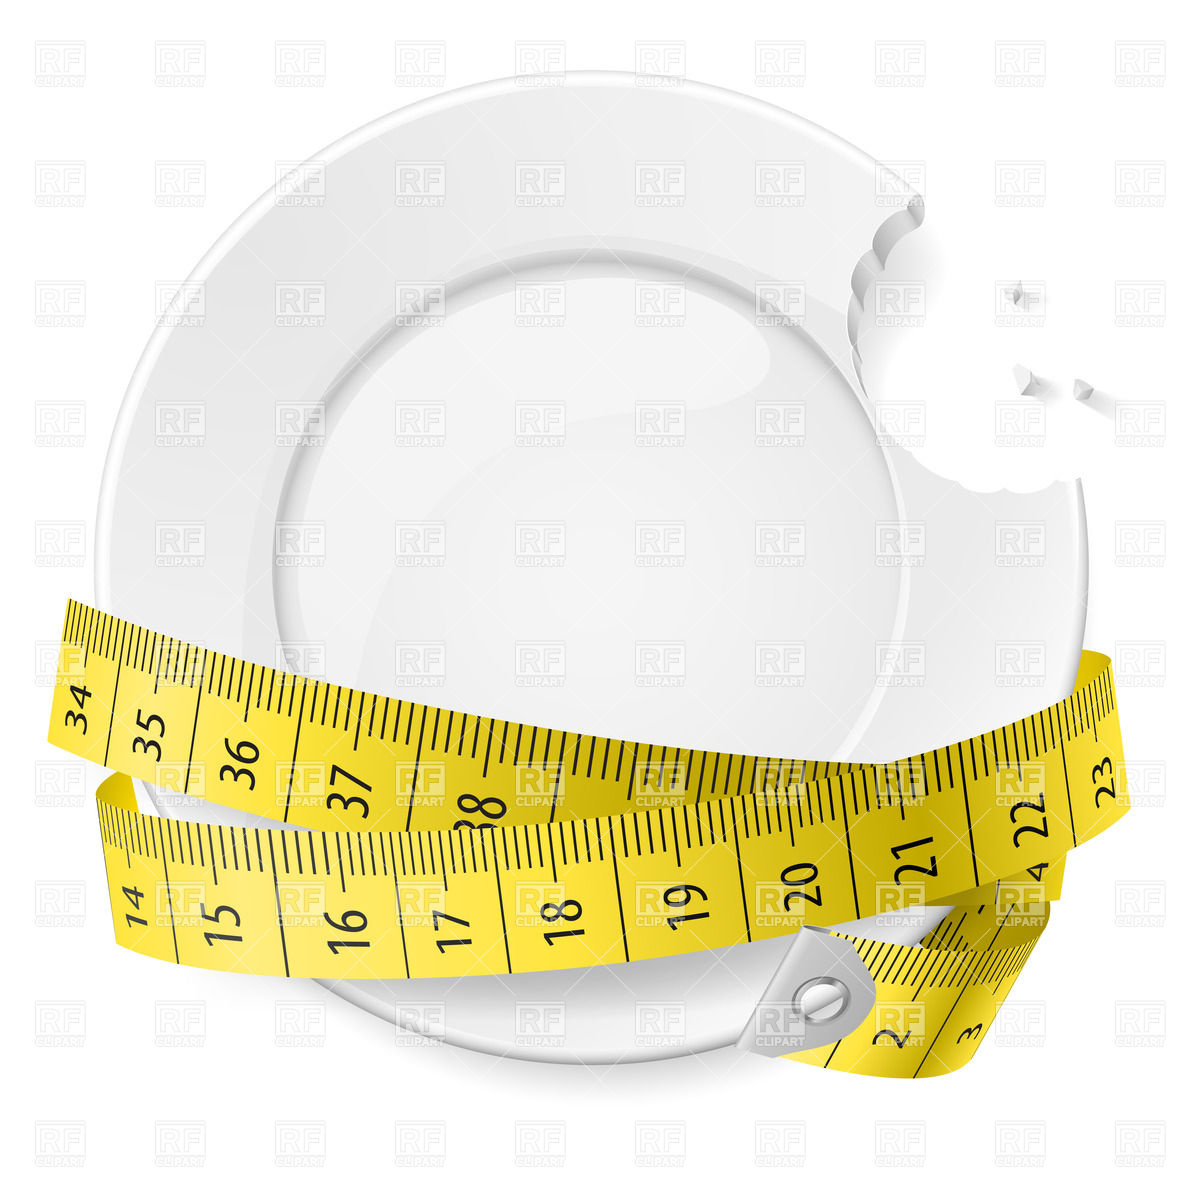 1200x1200 Bitten Plate With Measuring Tape Vector Image Vector Artwork Of